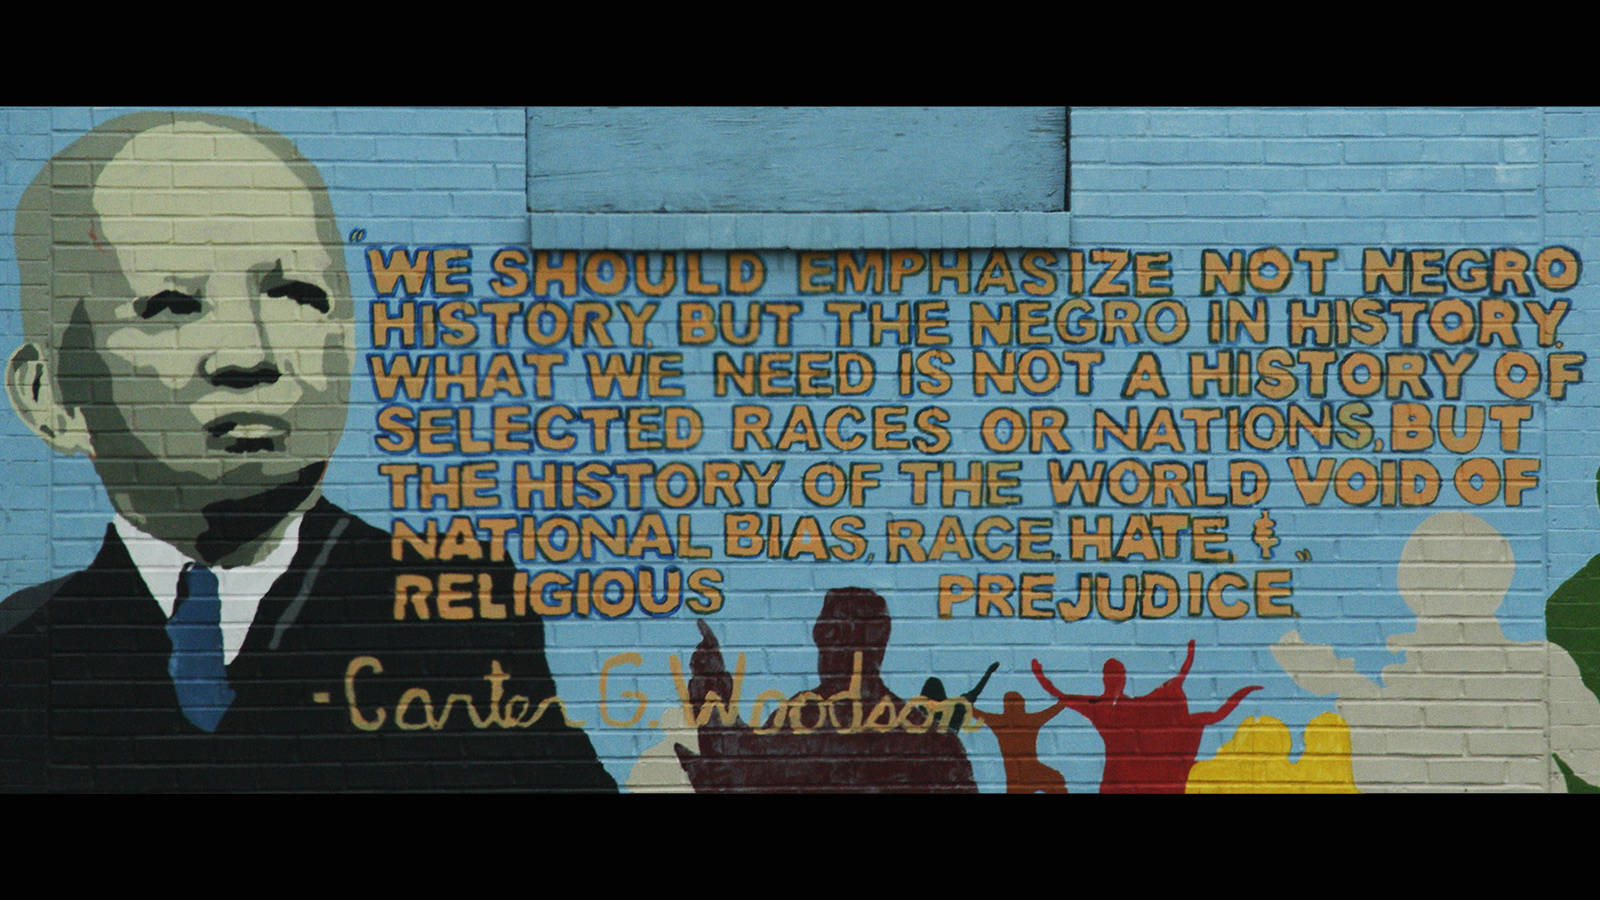 A mural near the Carter G. Woodson Home National Historic Site, Washington, D.C. (courtesy of https://www.npca.org/)